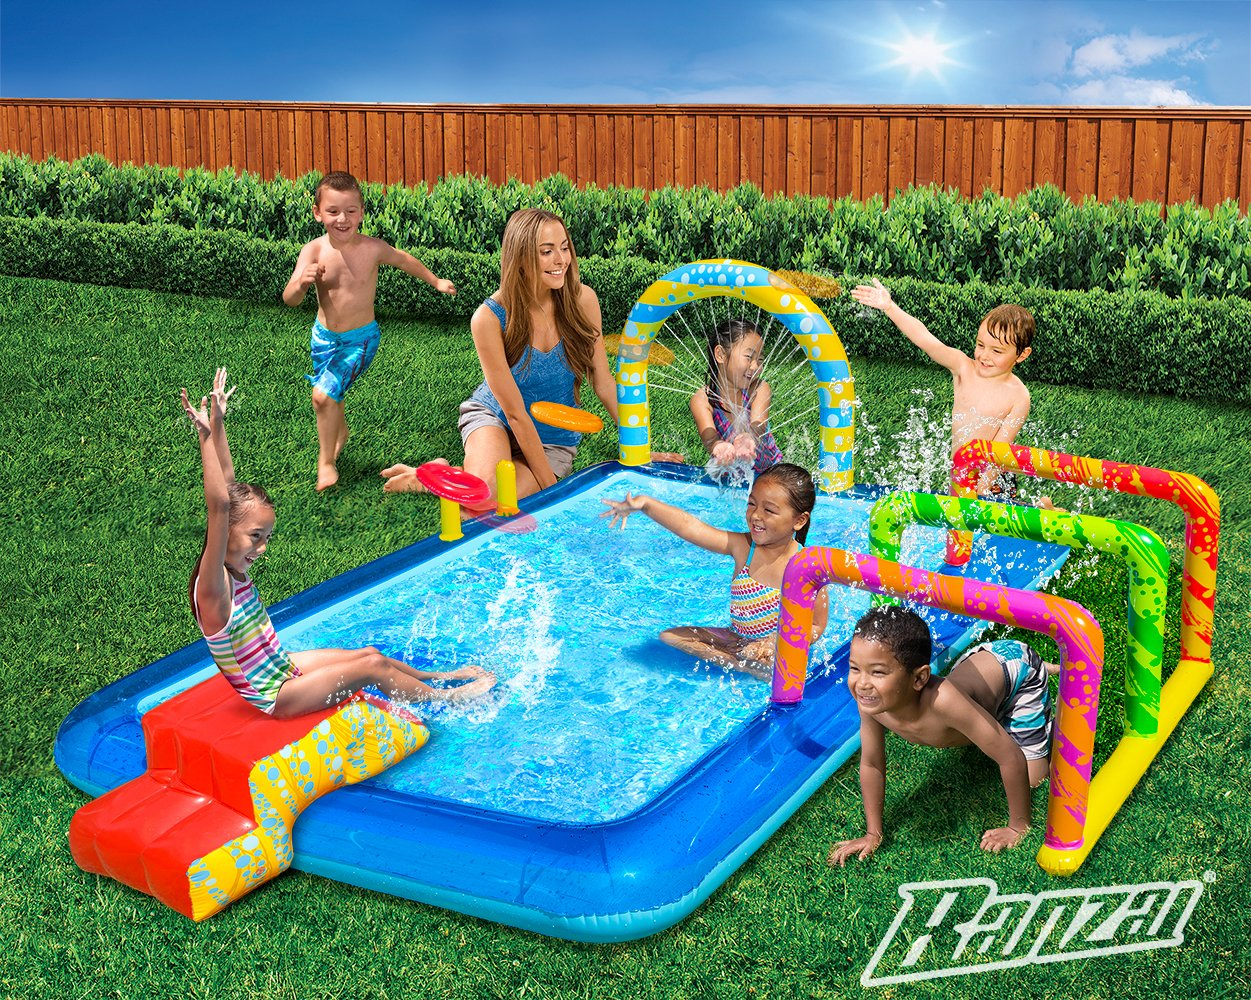 activity pool inflatable water slide spray swimming kids summer